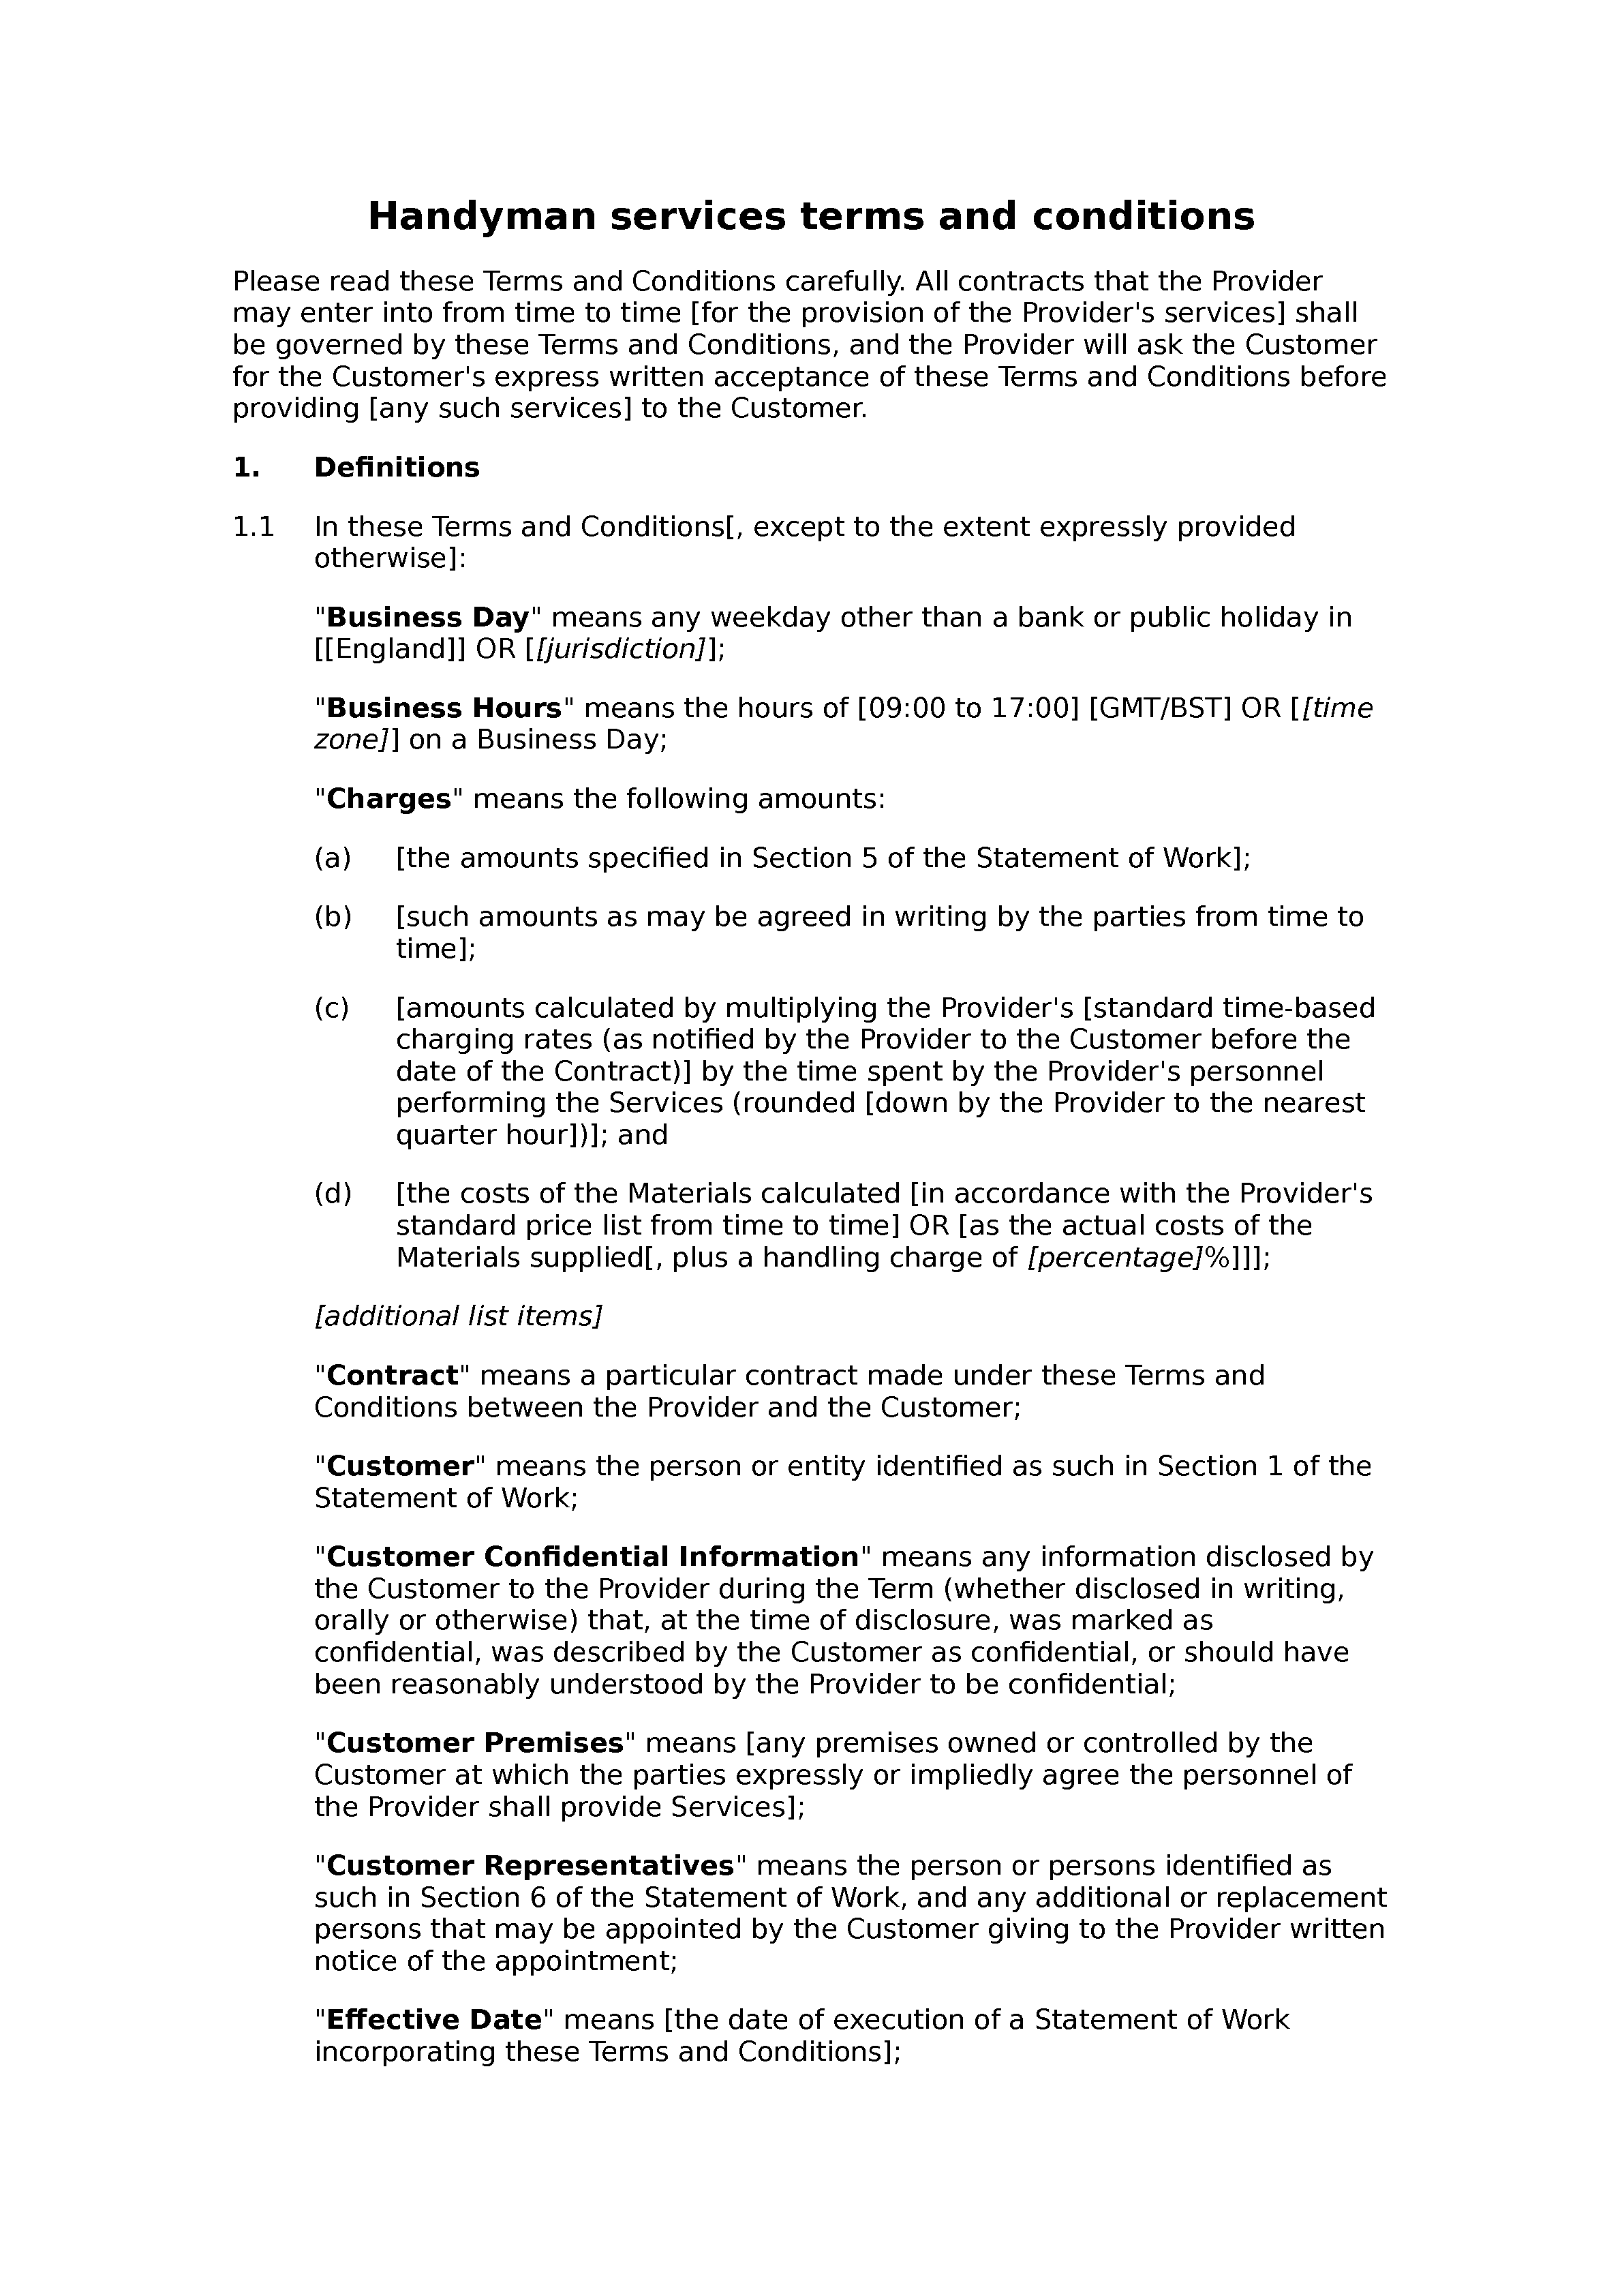 Handyman services terms and conditions docular for Standard terms and conditions for services template